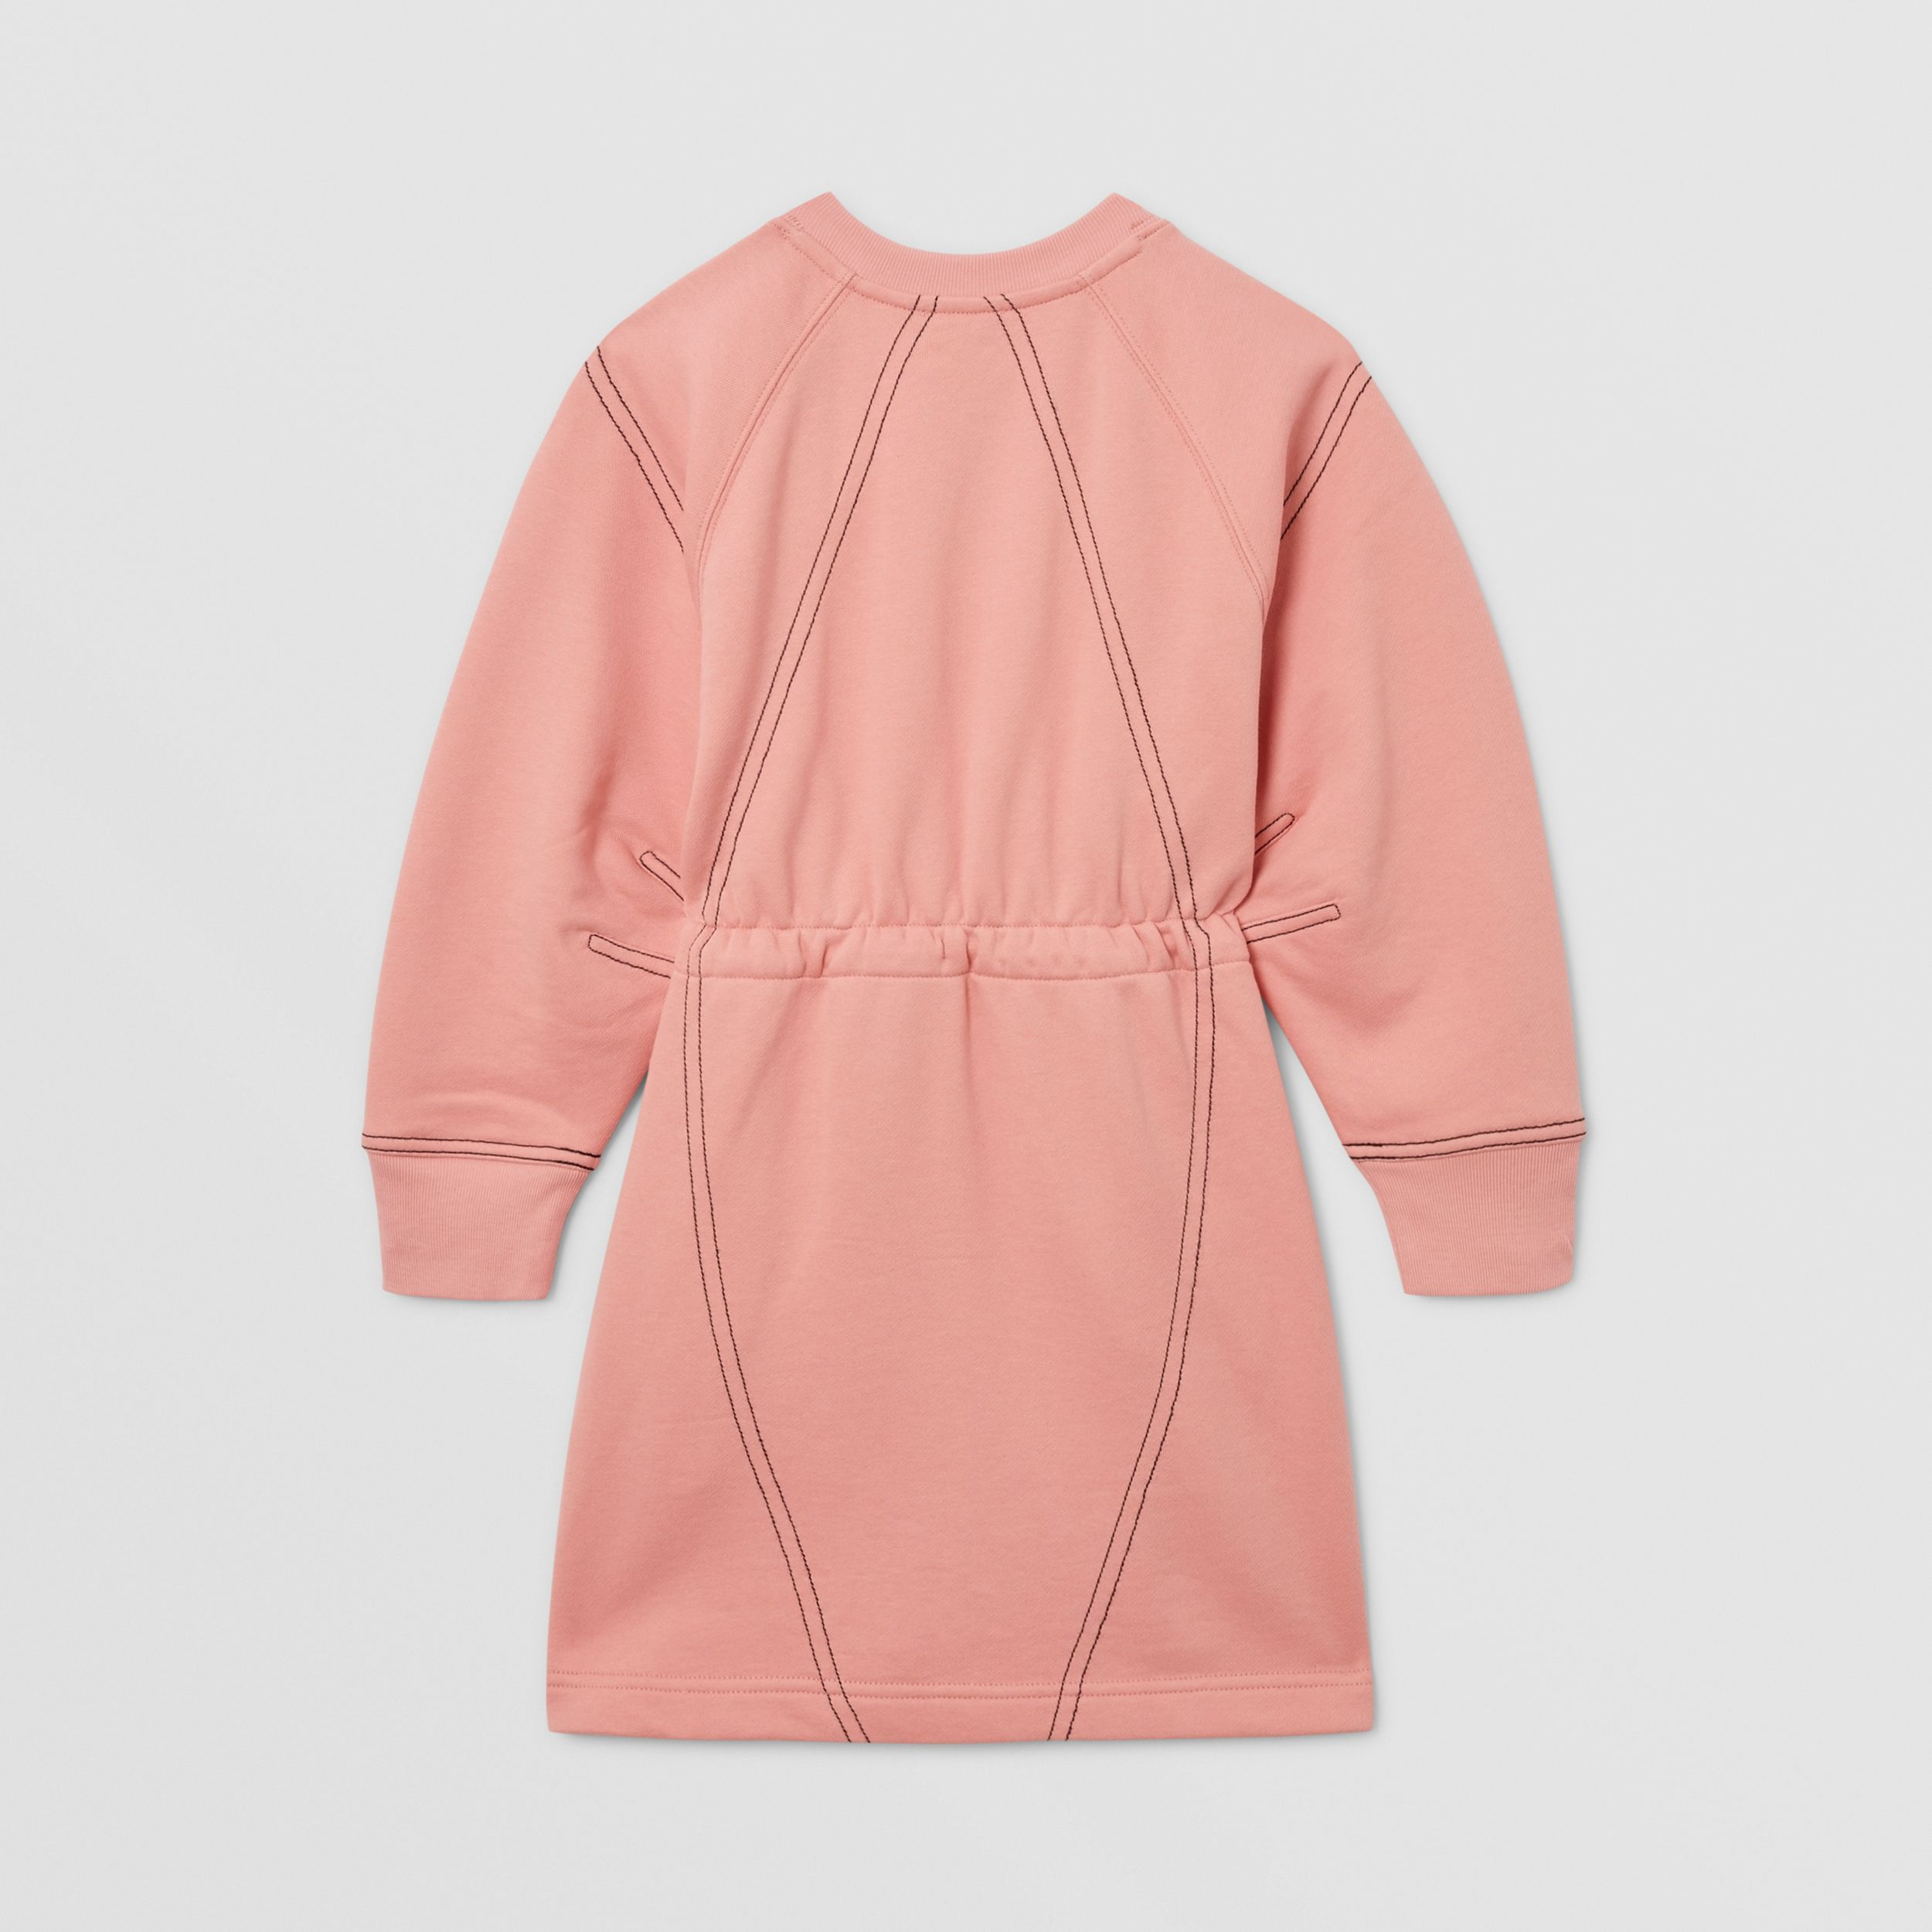 Logo Print Cotton Sweater Dress in Peach | Burberry - 4